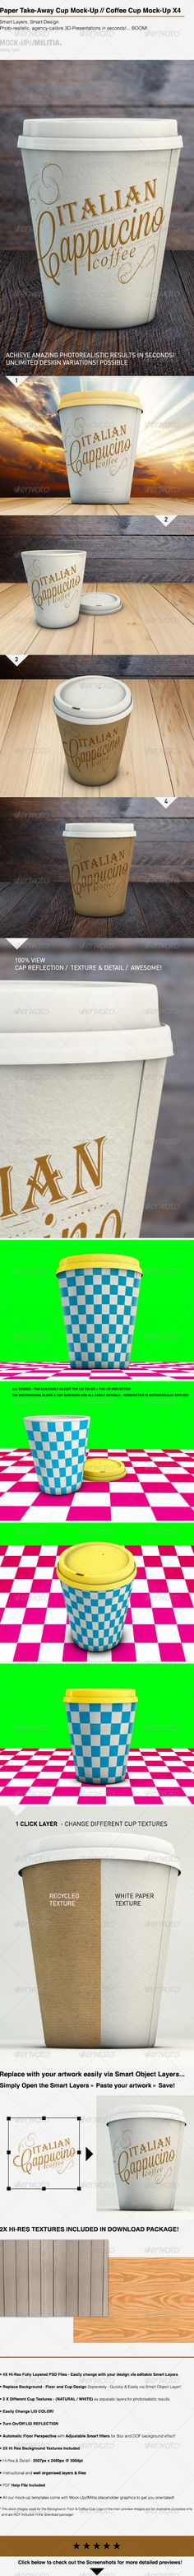 Paper Cup Mock-Up | Takeaway Coffee Cup Mock-Up - Food and Drink Packaging